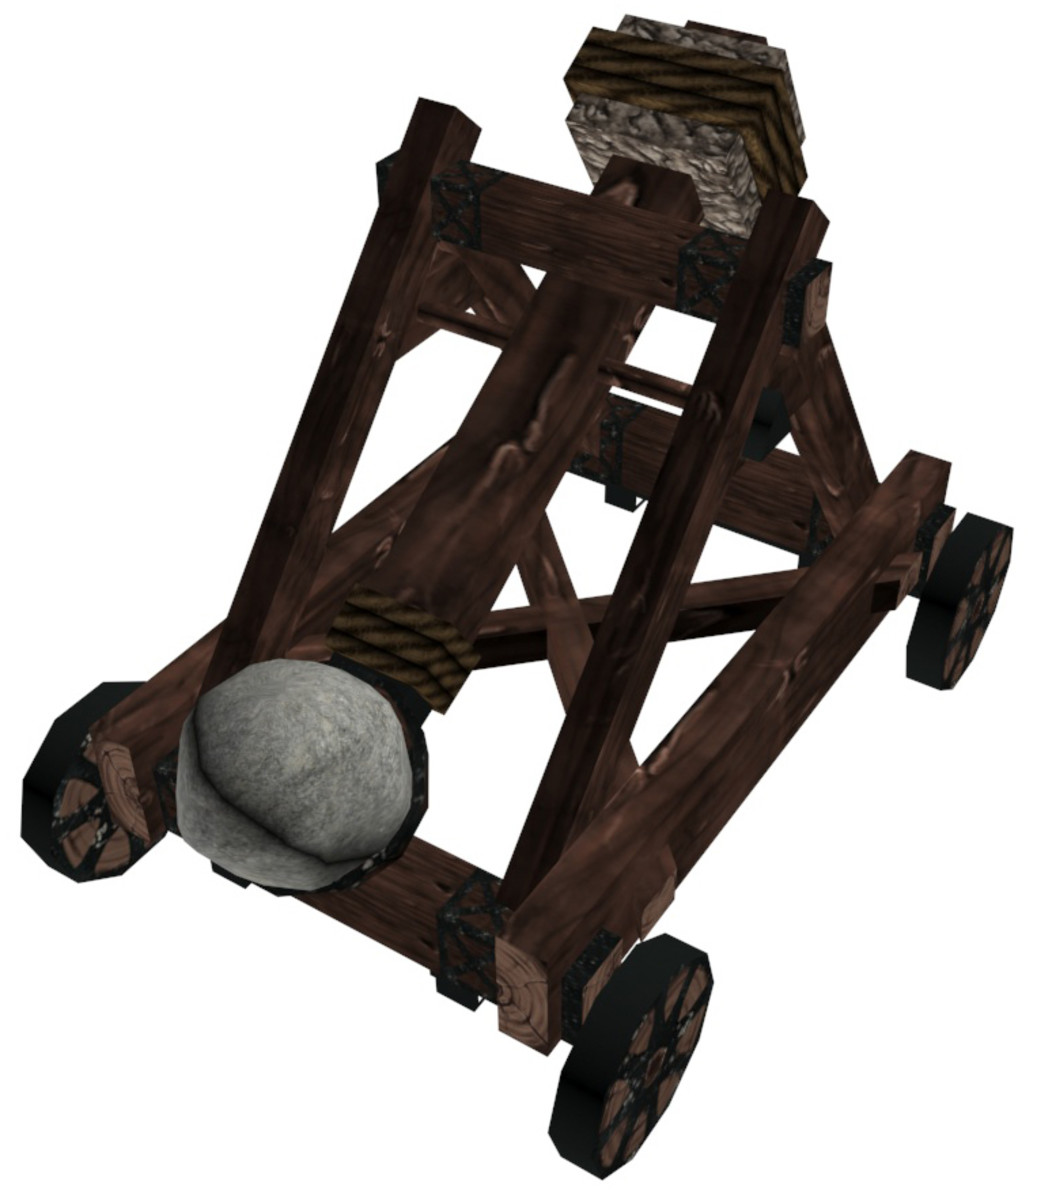 A Roman catapult was used to fire heavy objects at the enemy.